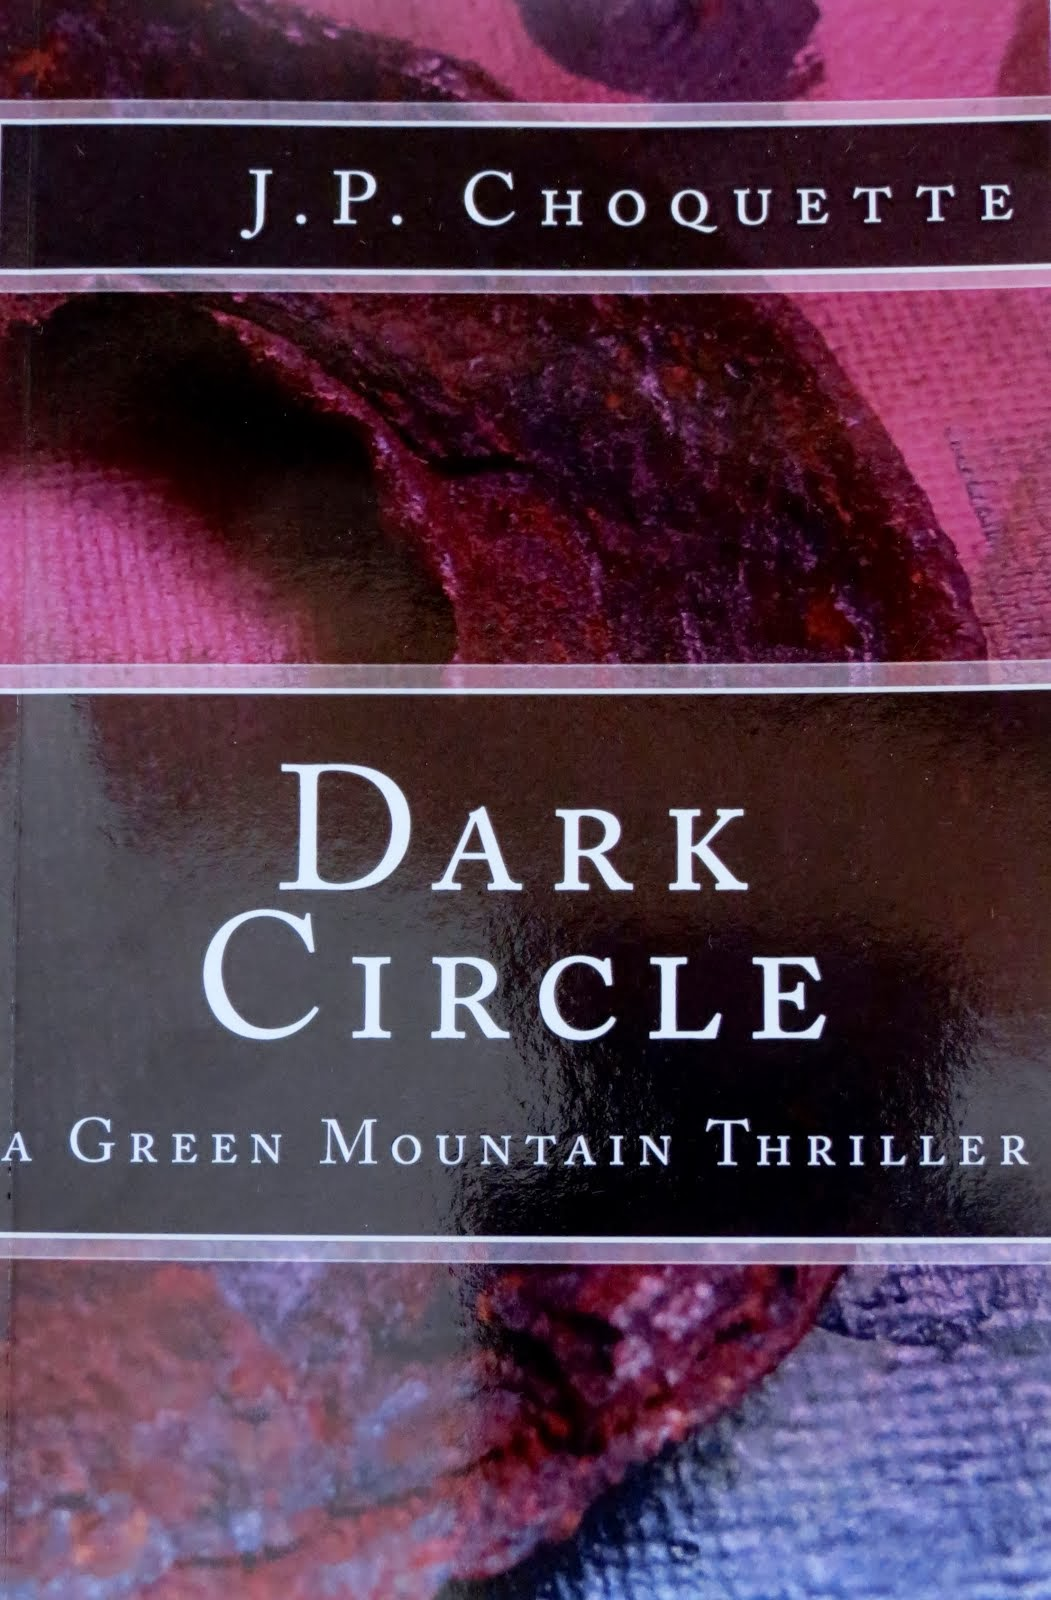 Dark Circle: a Green Mountain Thriller